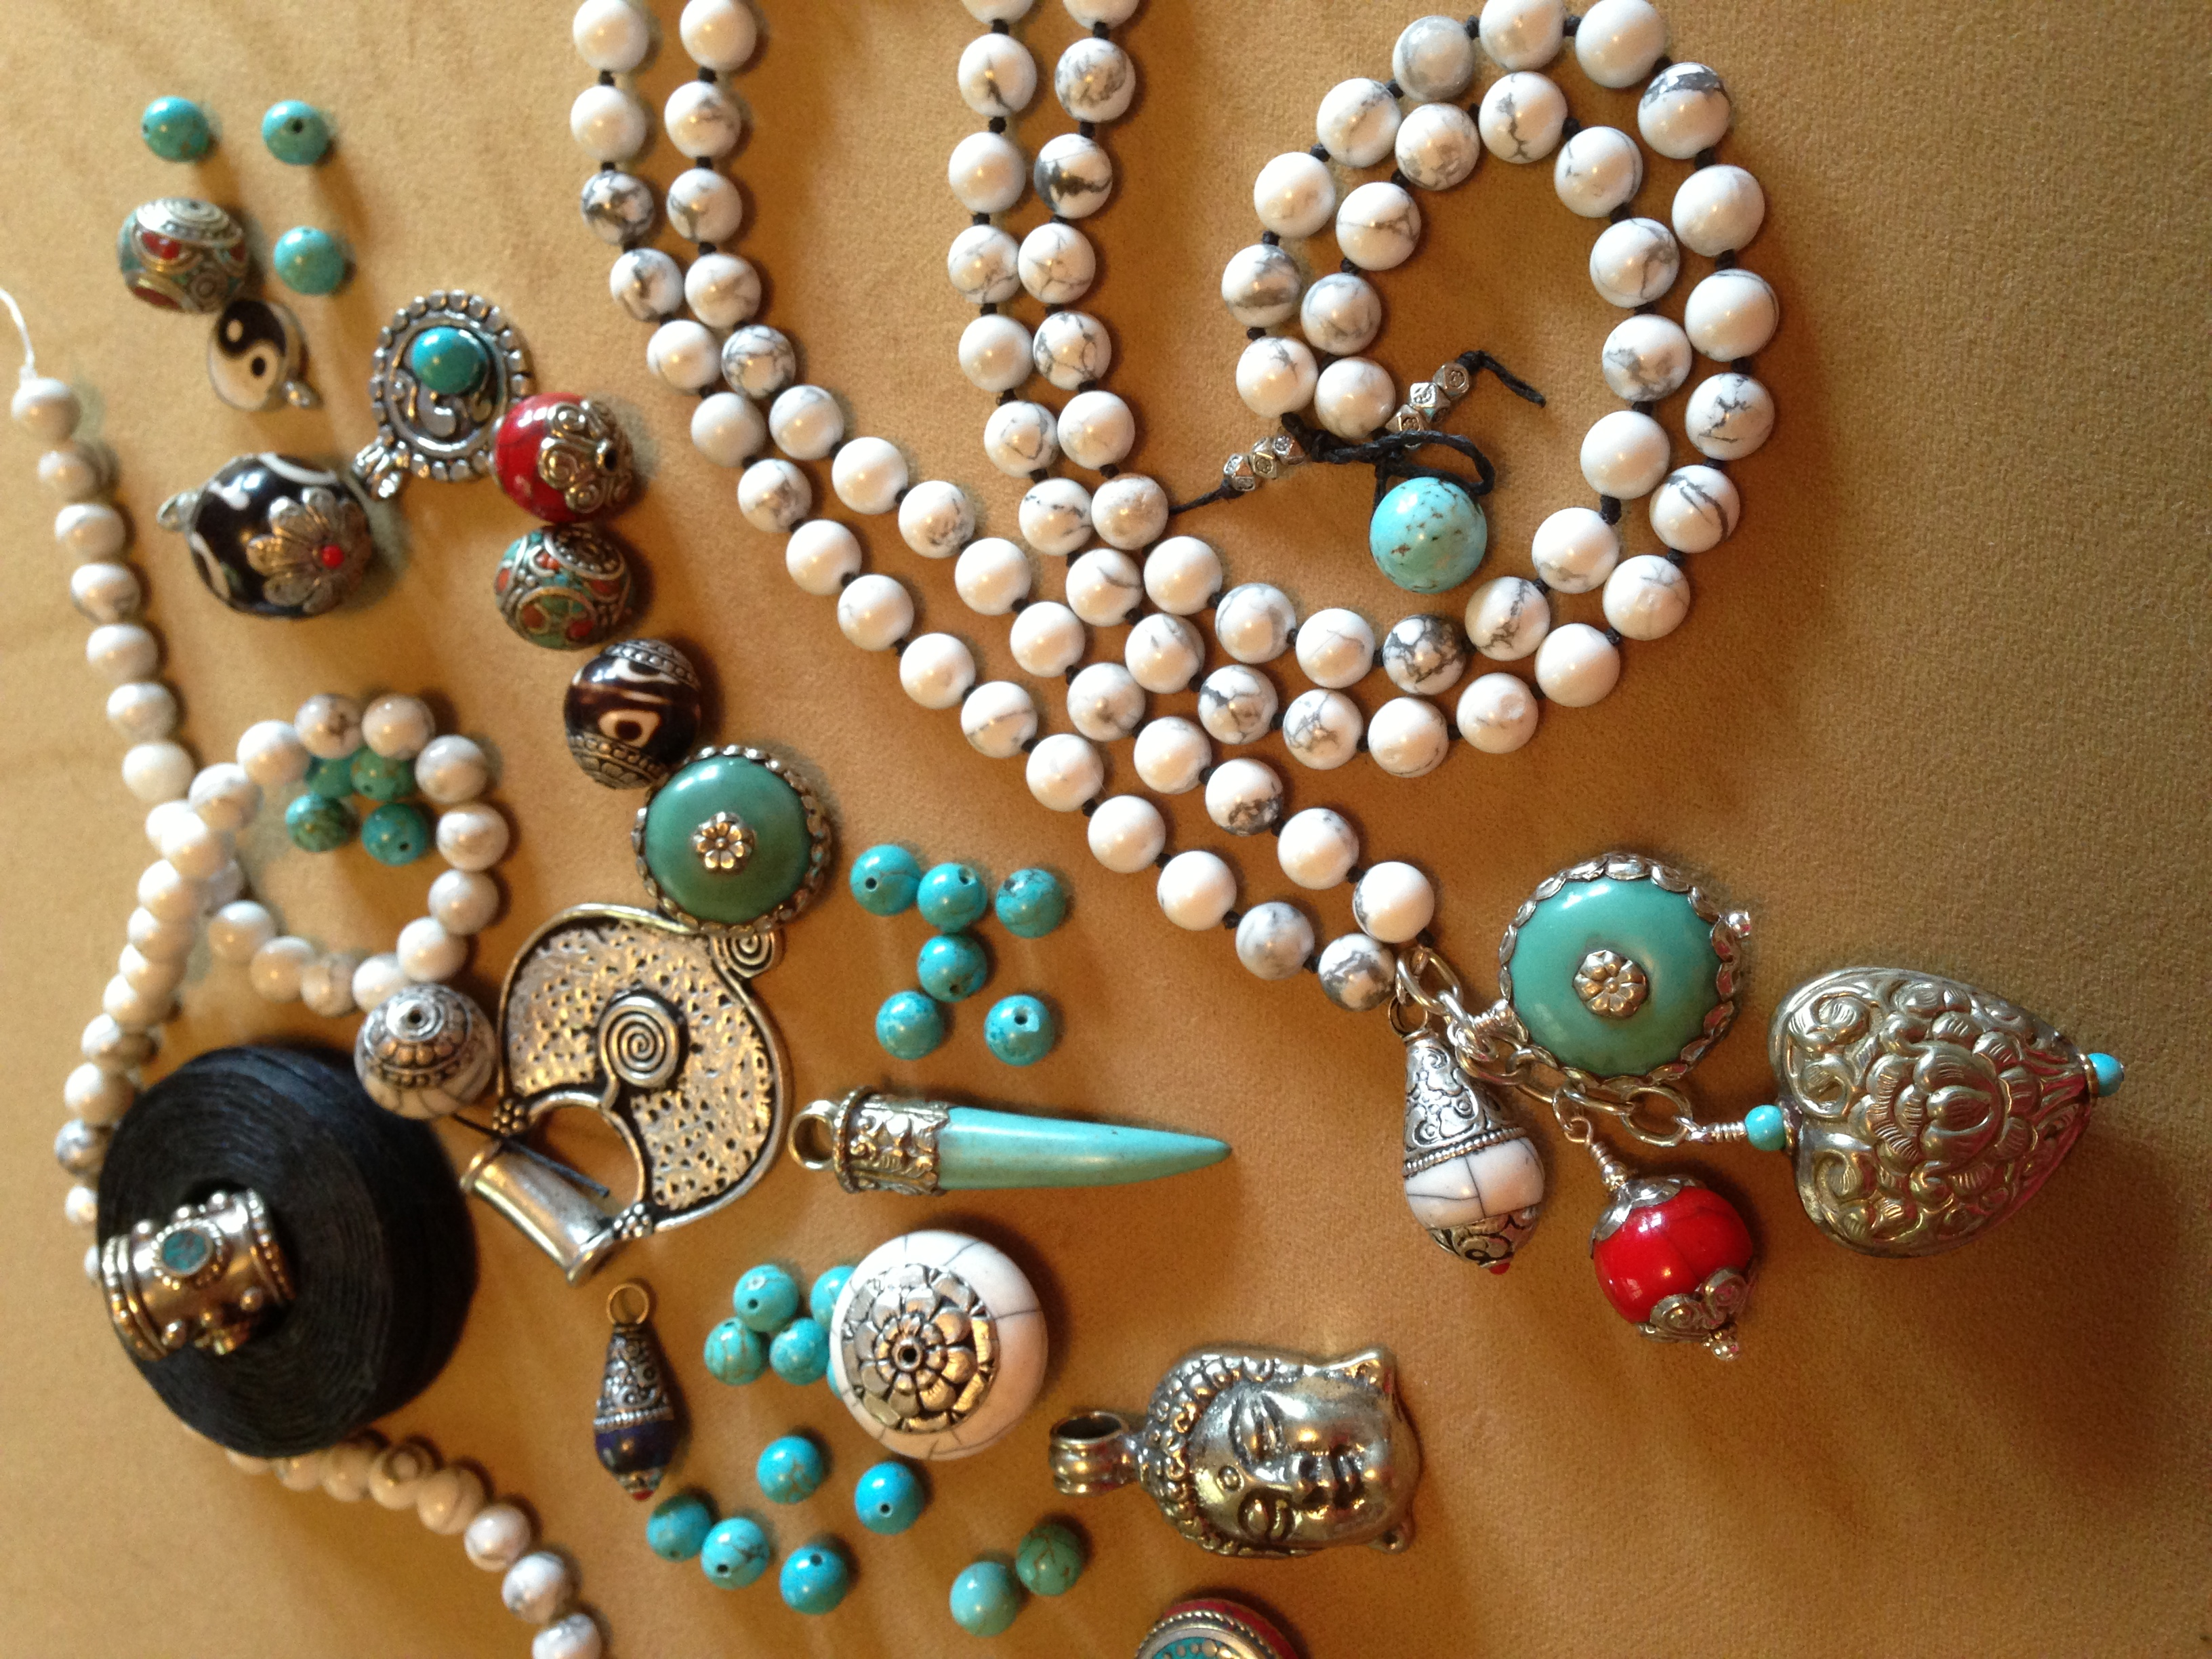 Accountant Turned Jewelry Artist to have Trunk Show at Sasha's